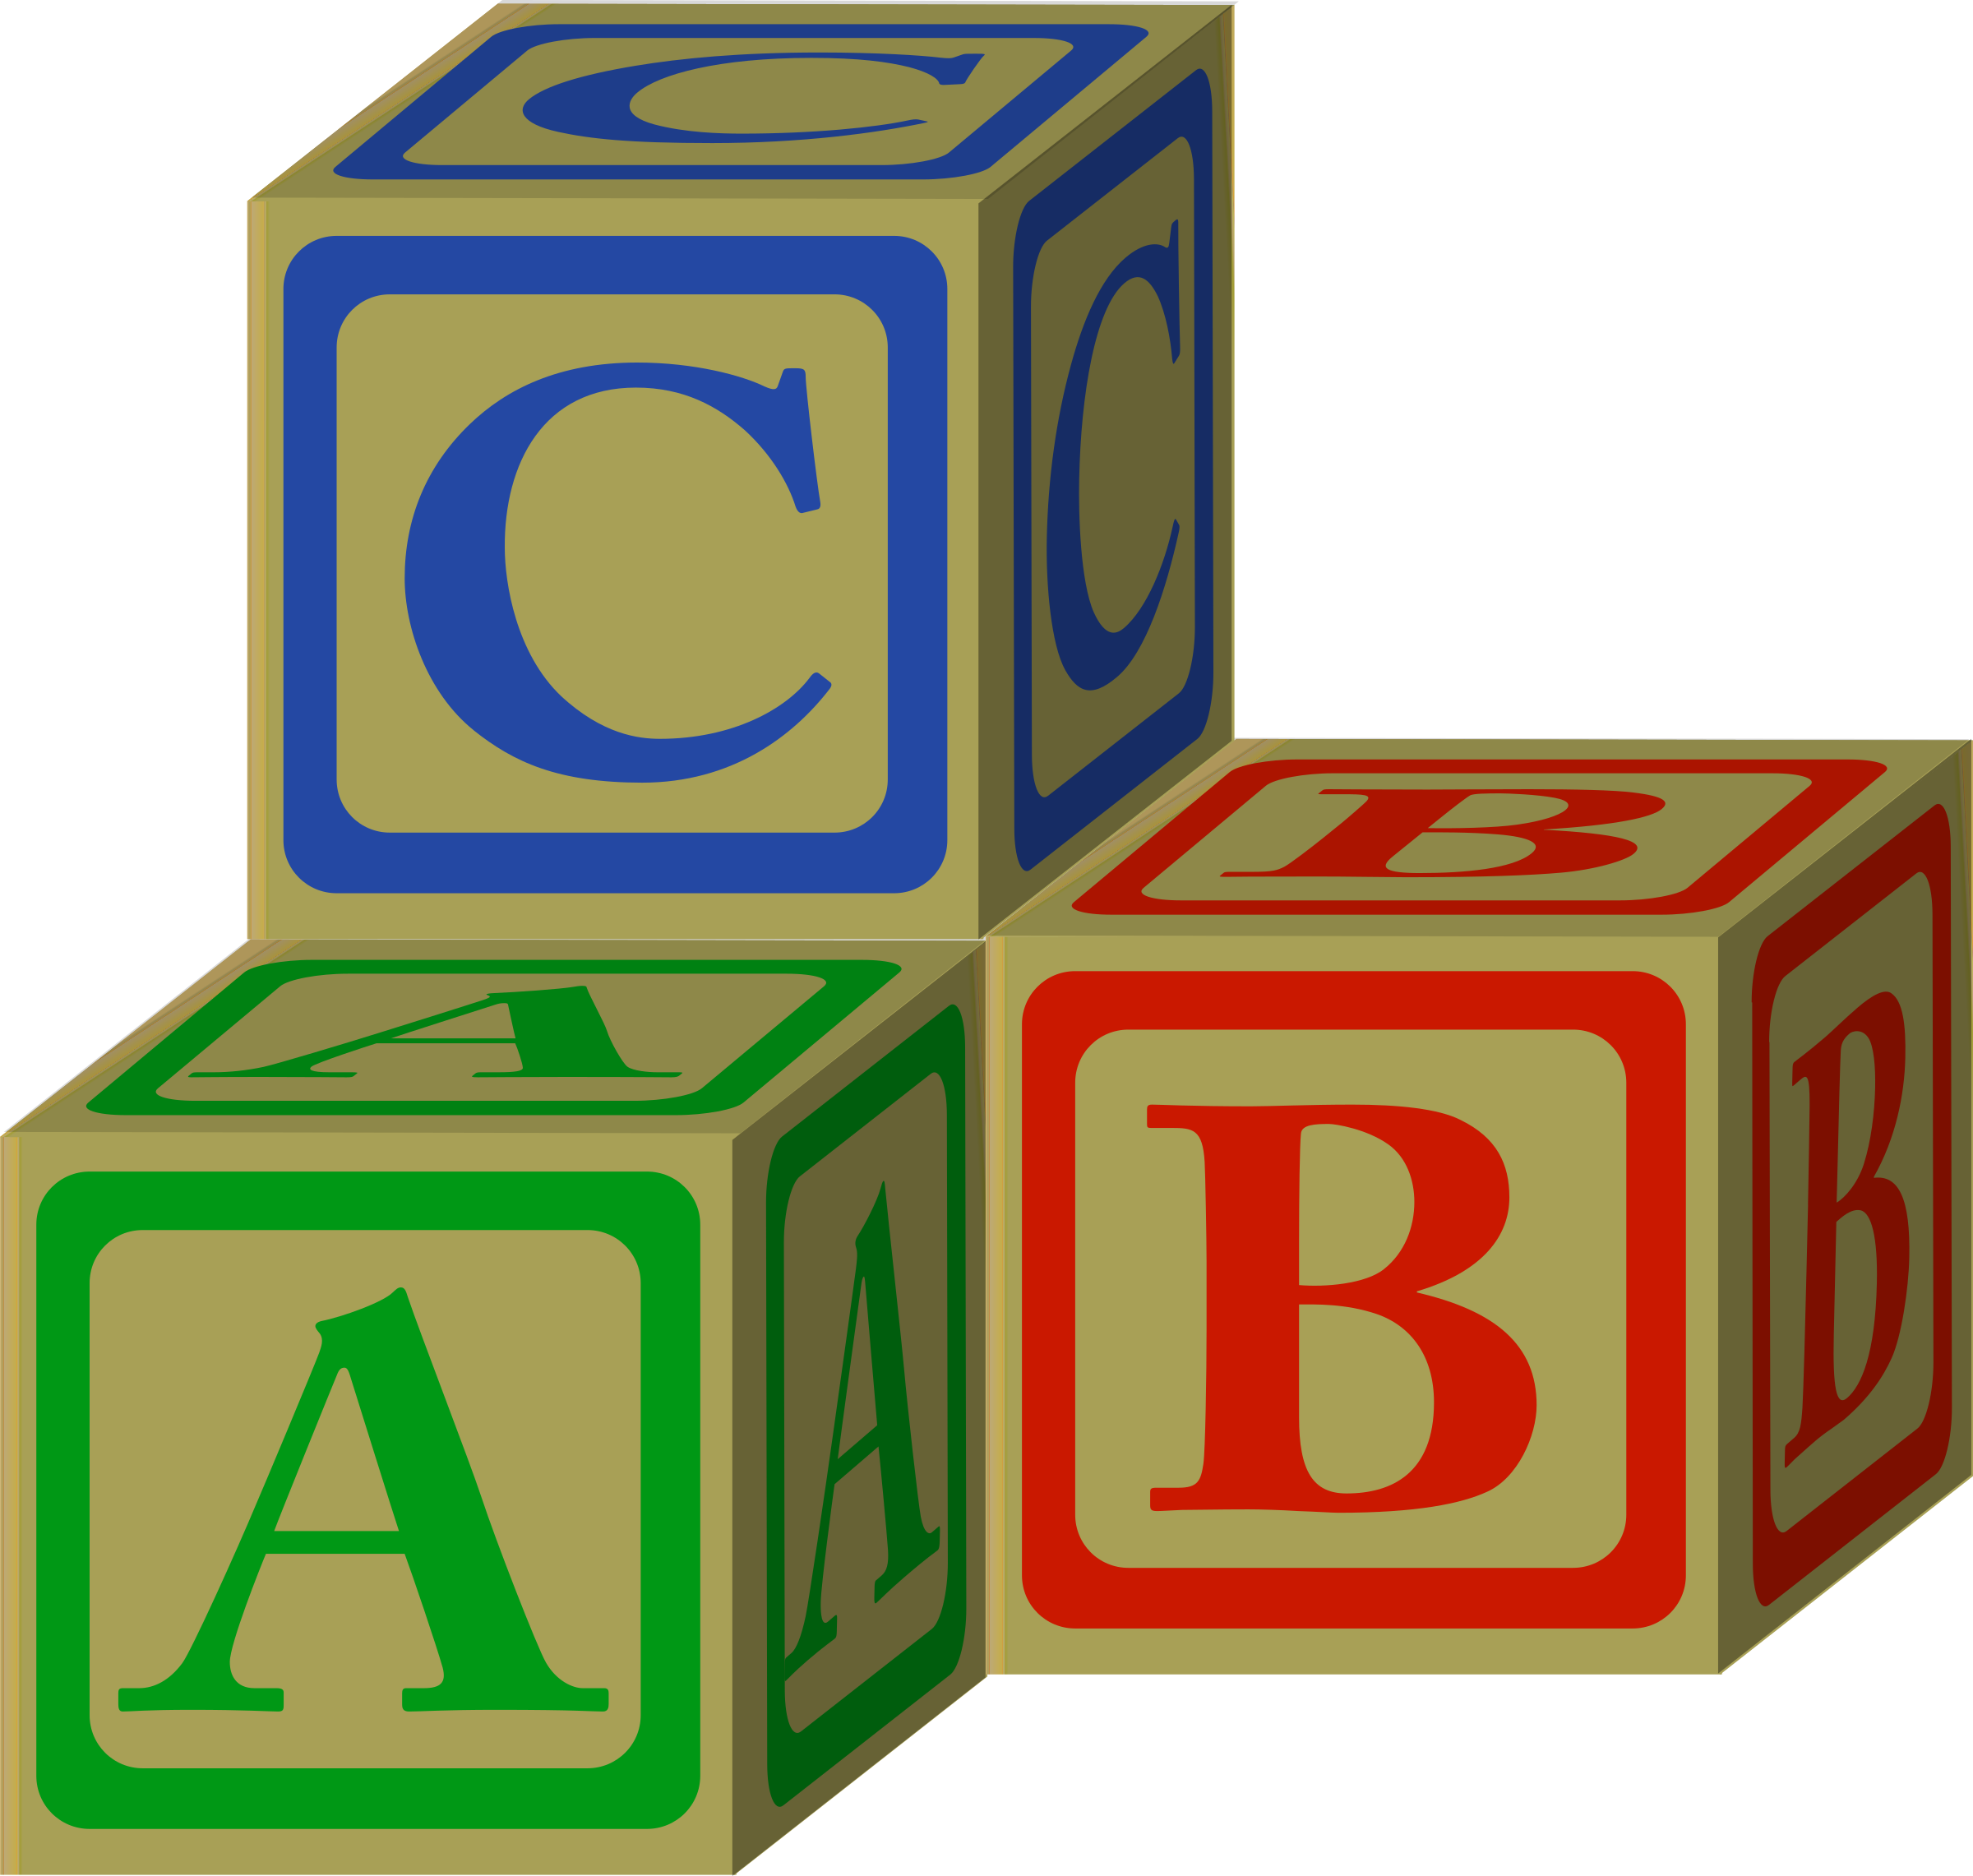 Clipart alphabet blocks png free stock Clipart - abc blocks petri lummema 01 png free stock